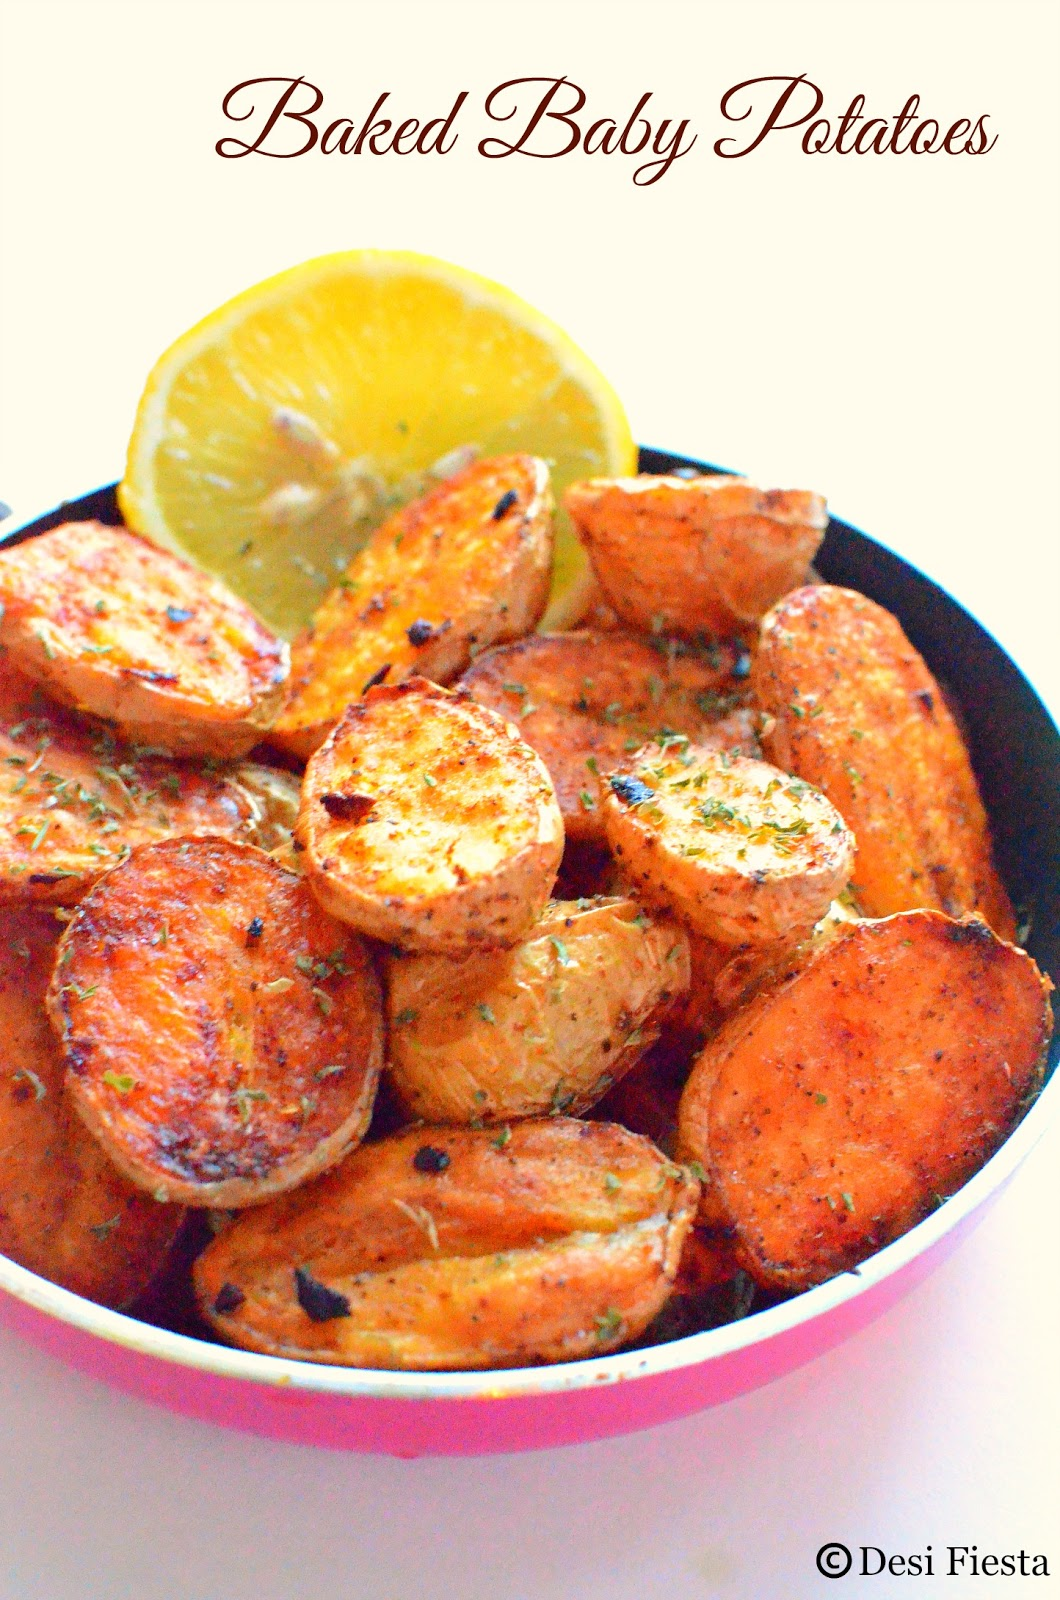 Roasted Baby Potatoes with Herbs and garlic